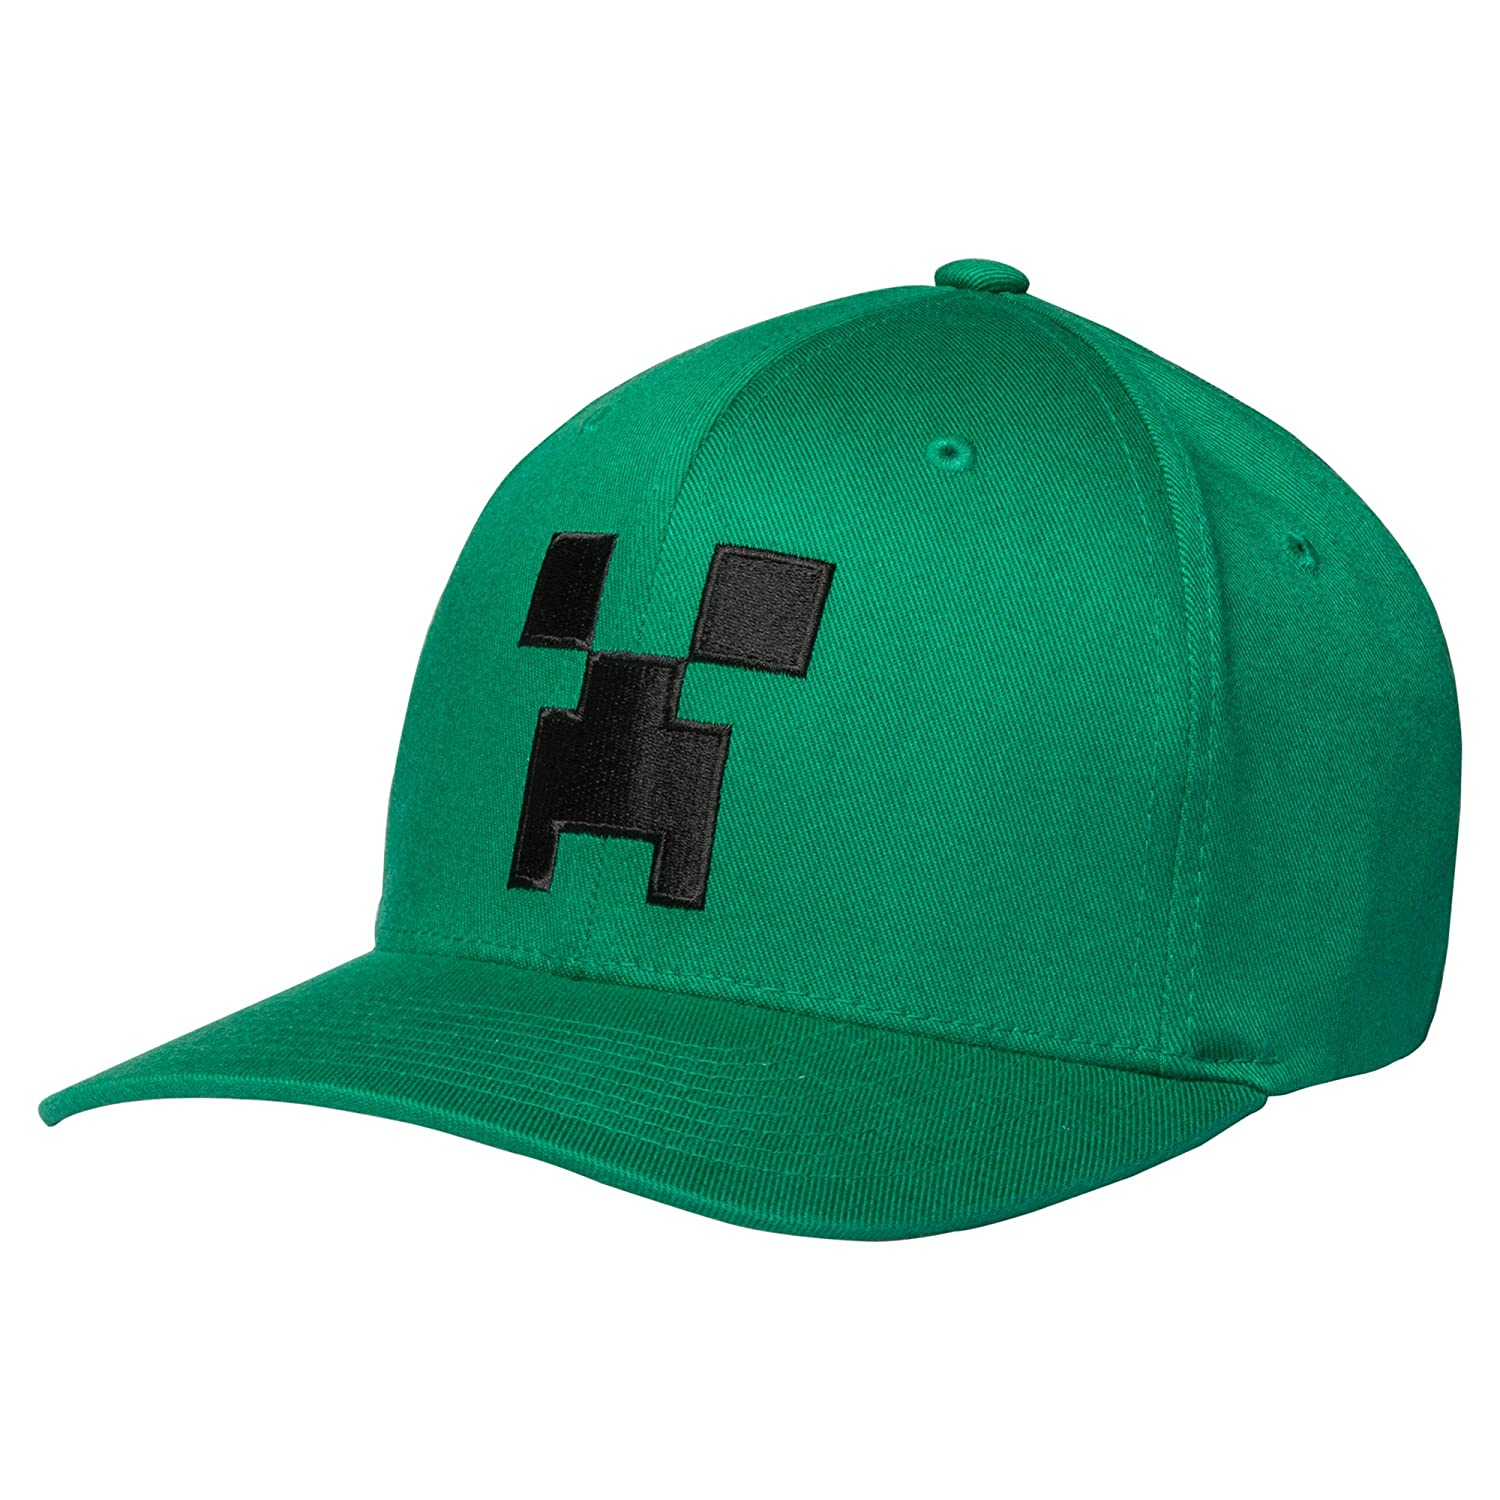 The Creeper Mob hat is bright green with a fun Creeper face on the front.